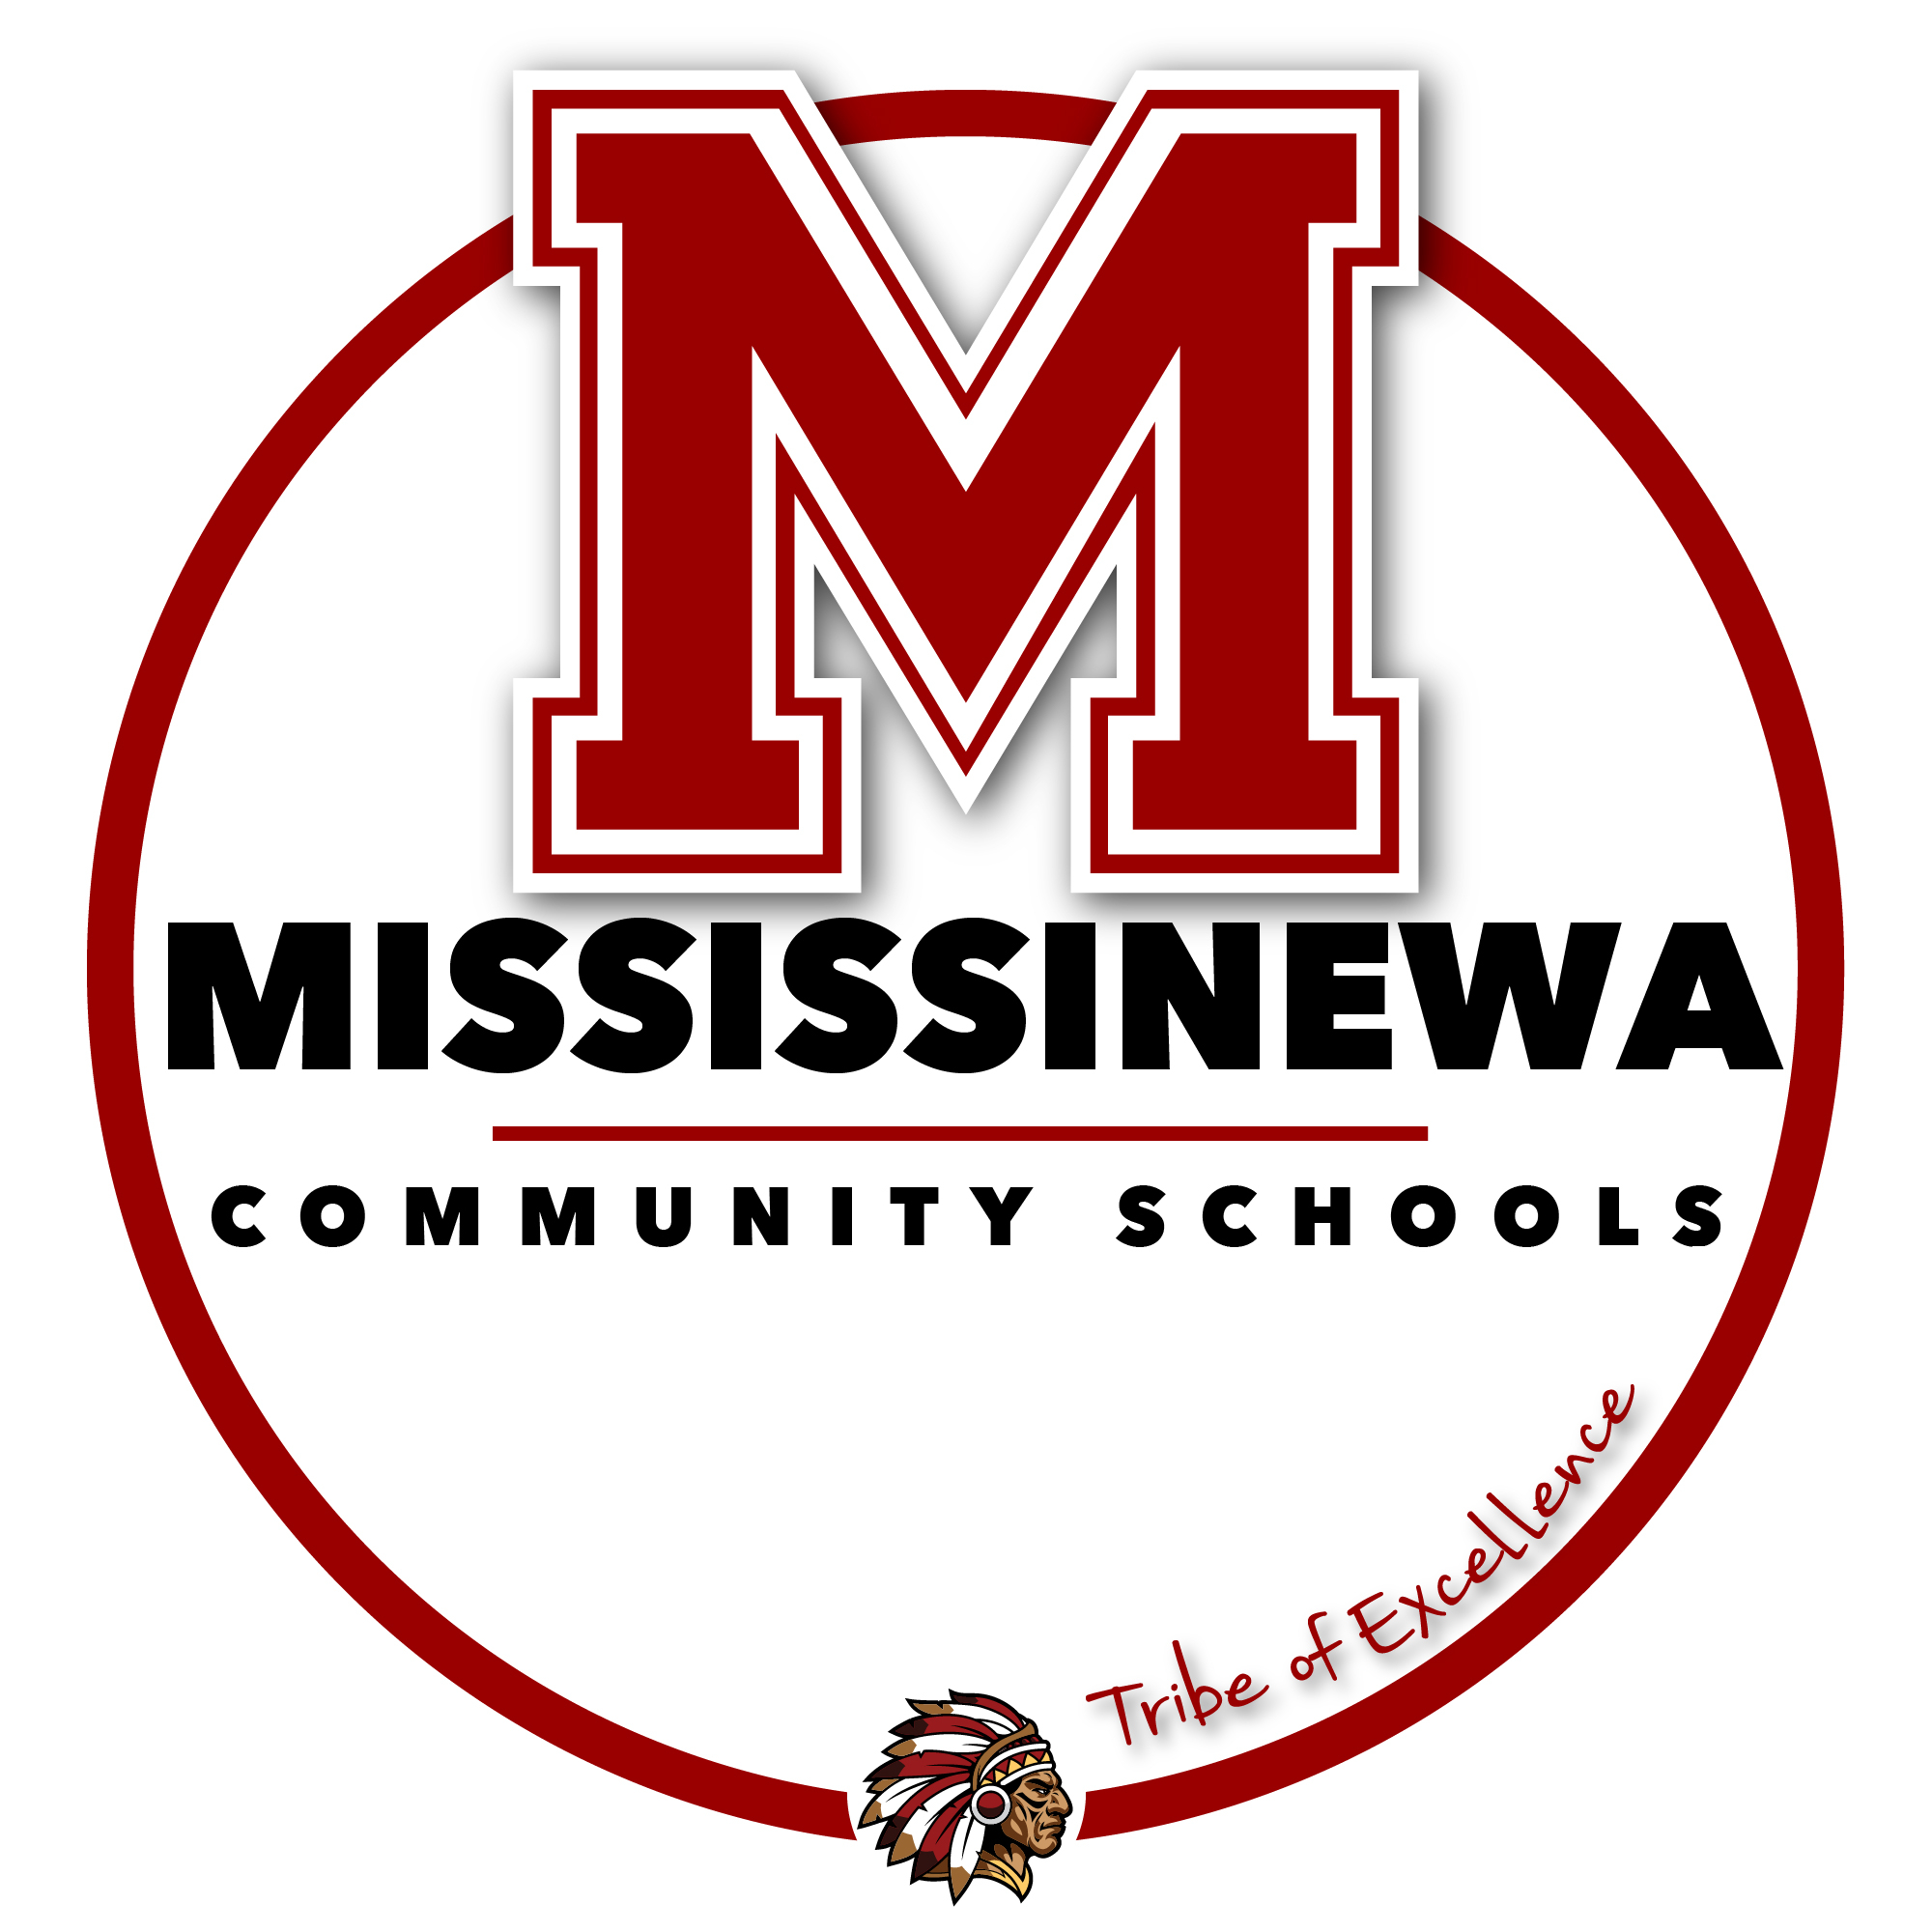 Mississinewa Community Schools Code of Conduct Policy